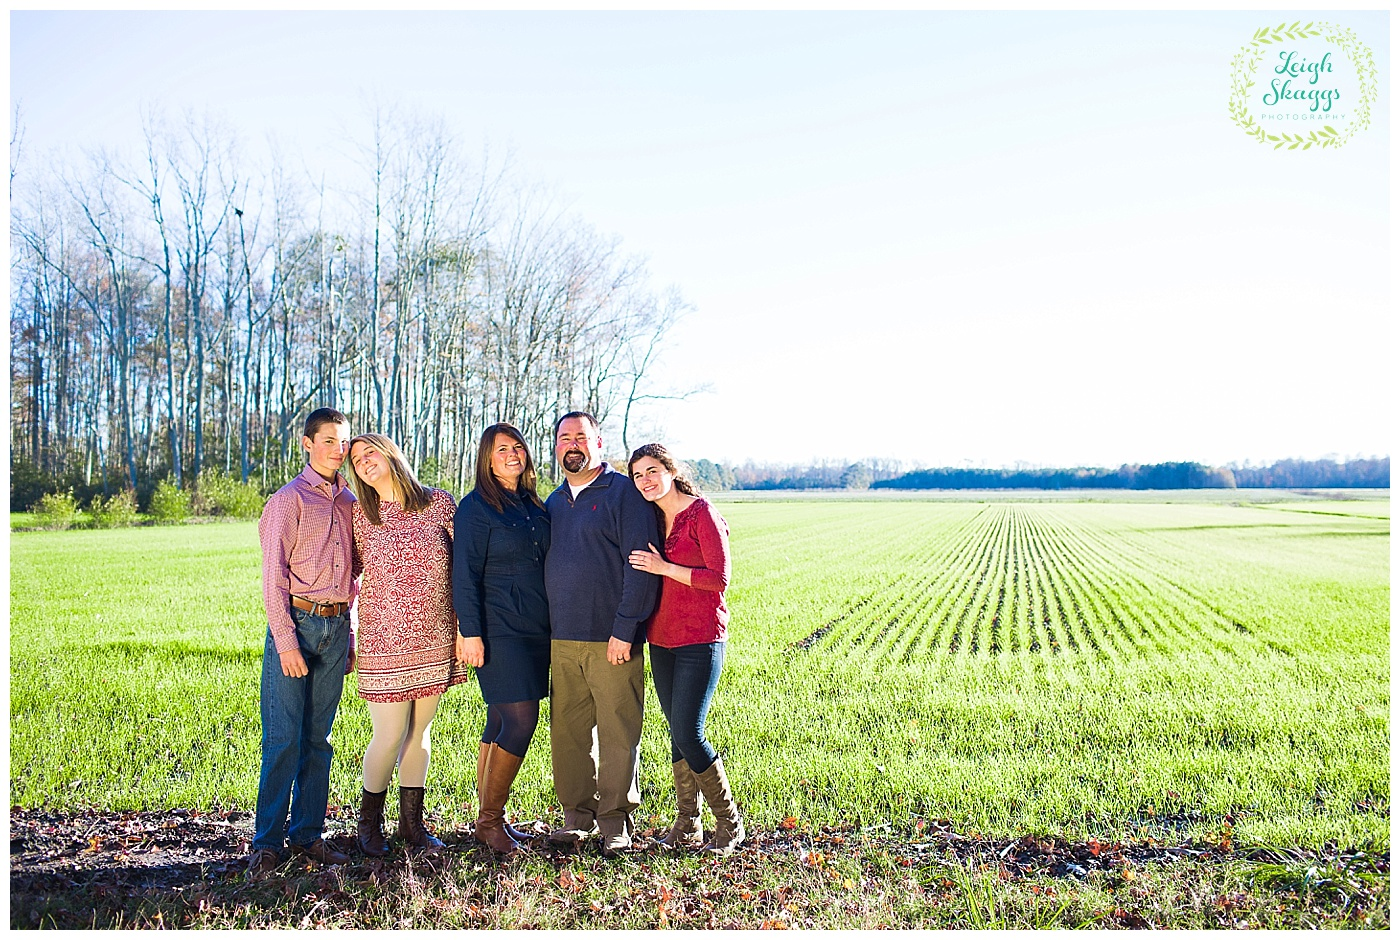 The Gentry Family| Family Portrait Photography